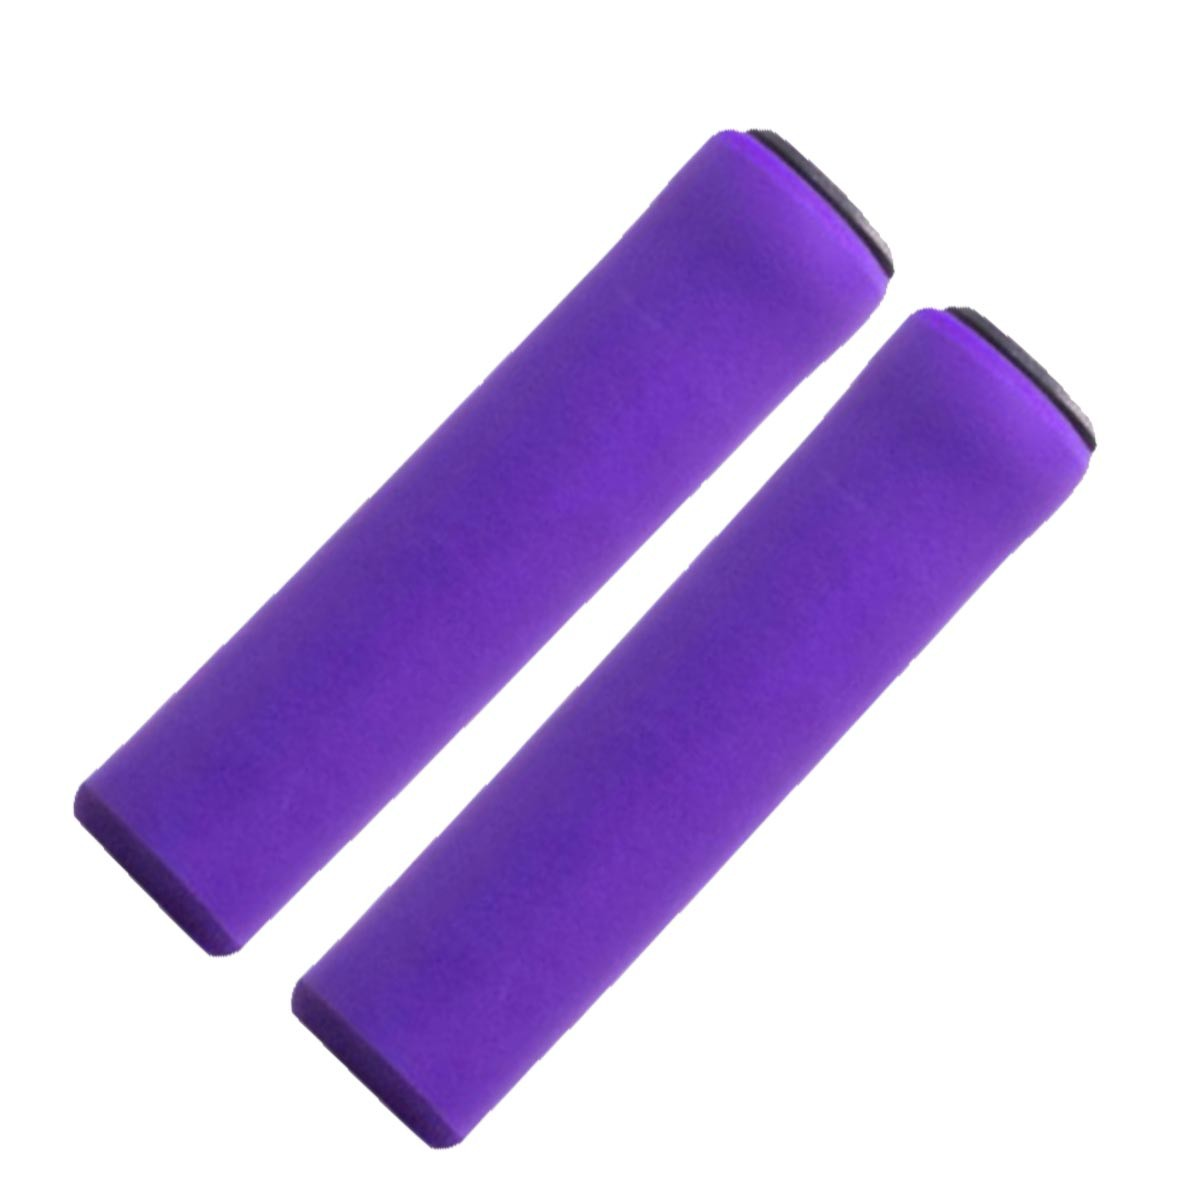 MANOPLA SILICONE LILAS 130MM PRO